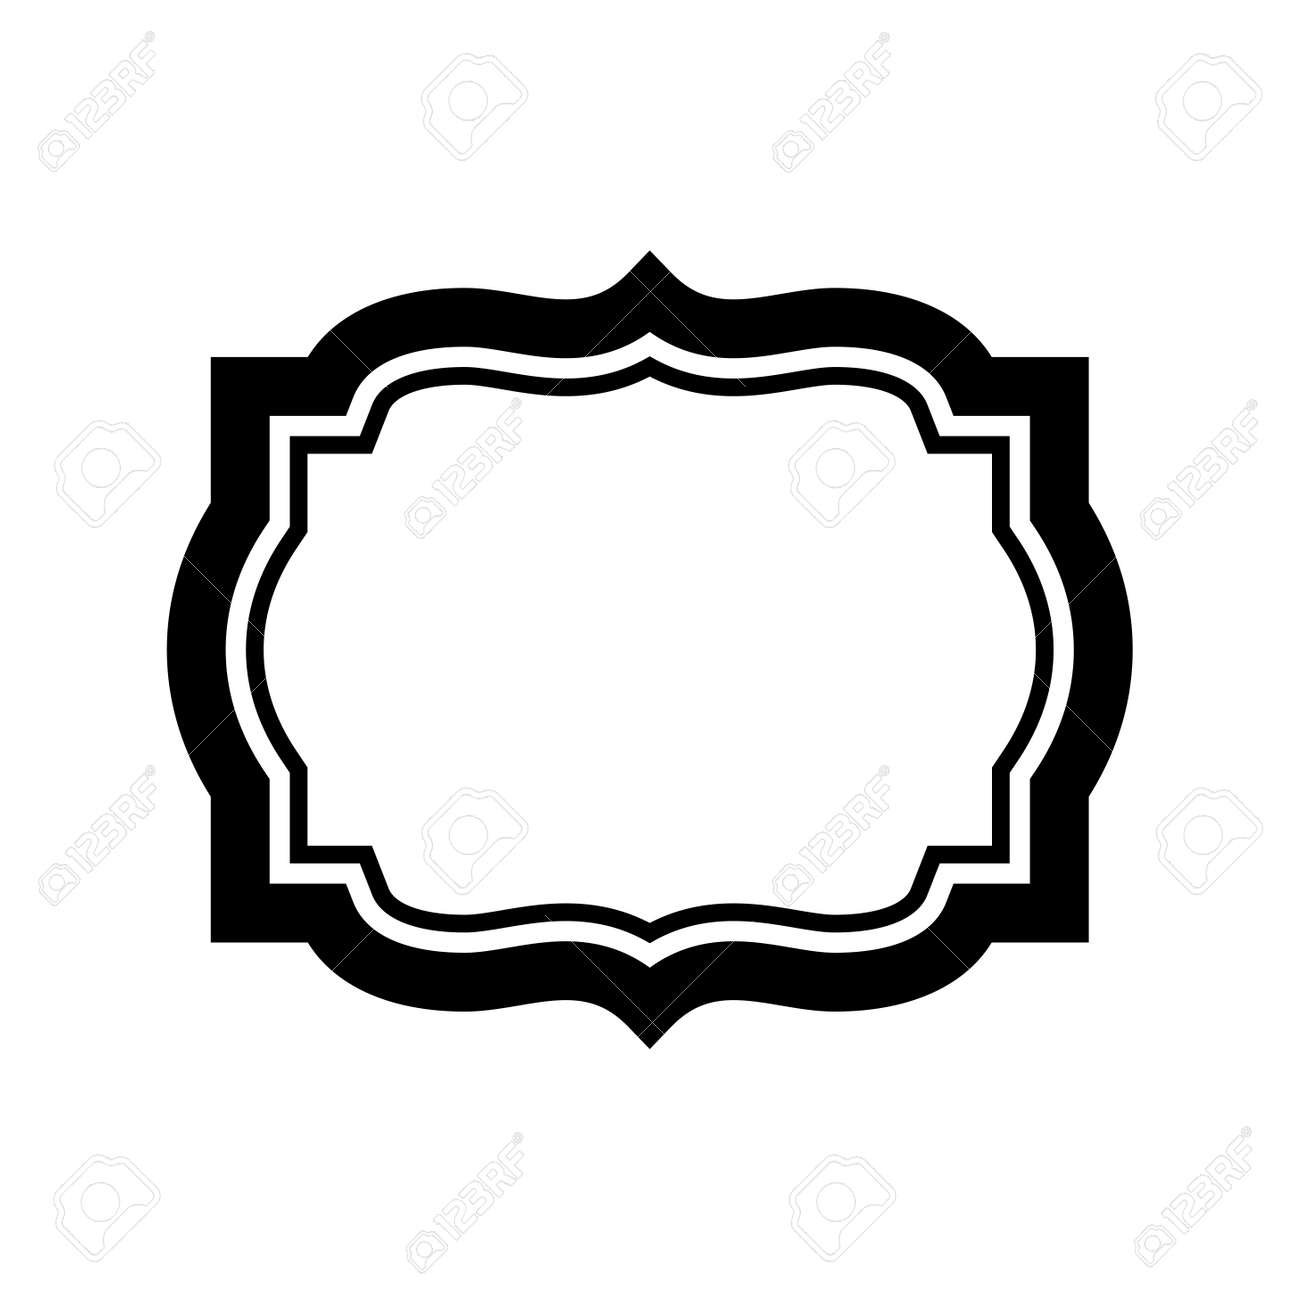 vintage black frame. Black Frame For Picture. Beautiful Simple Design. Vintage Style Decorative Border Isolated On White